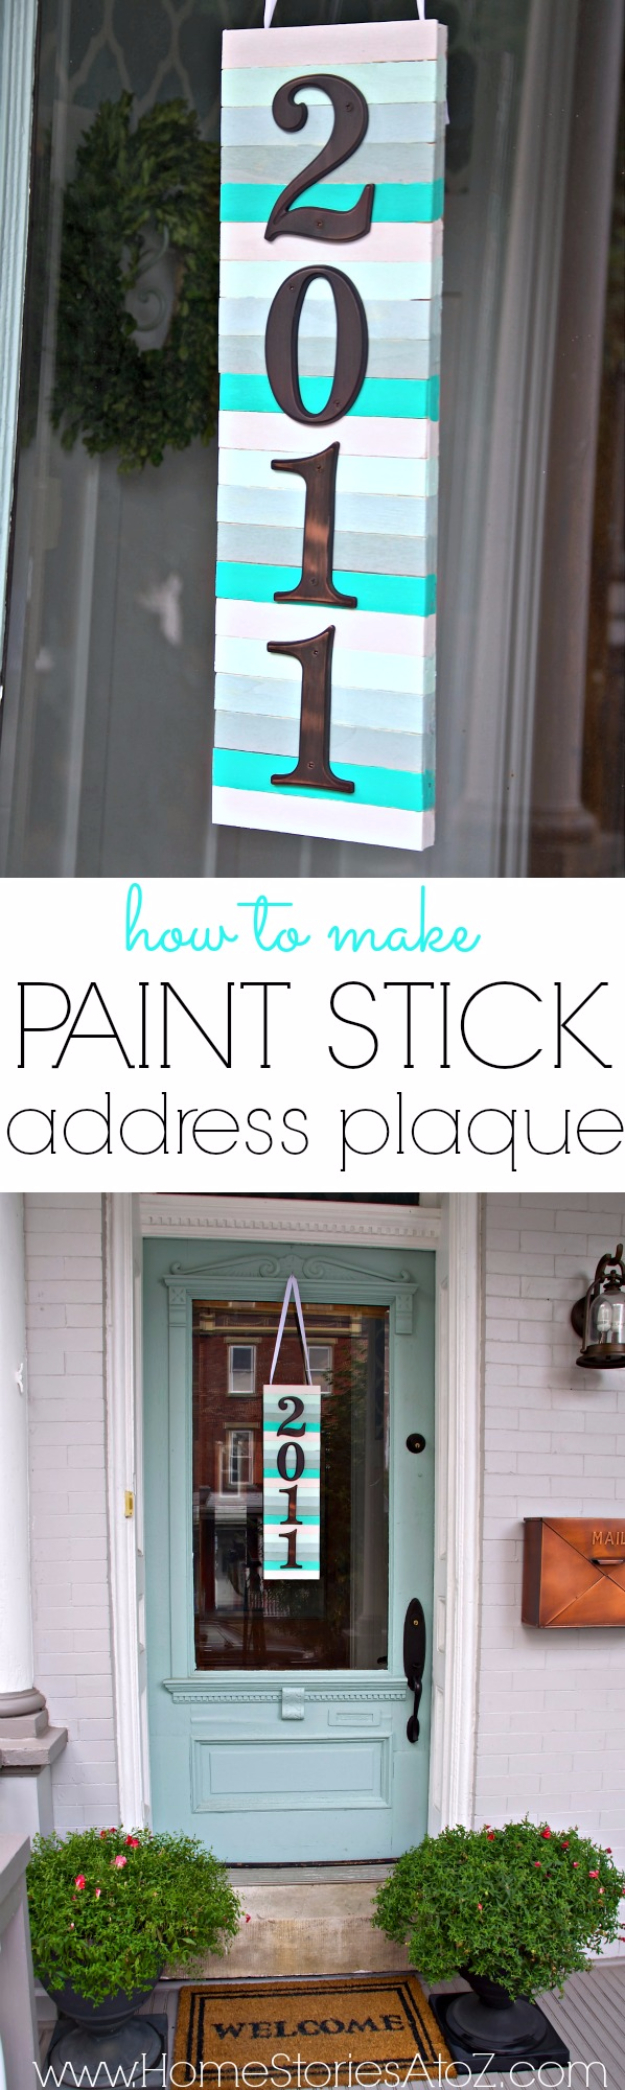 DIY Projects Made With Paint Sticks - Paint Stick Address Plaque - Best Creative Crafts, Easy DYI Projects You Can Make With Paint Sticks From The Hardware Store - Cool Paint Stick Crafts and Furniture Project Tutorials - Crafty DIY Home Decor Ideas, Wall Art and Furniture That Make Awesome DIY Gifts and Christmas Presents for Friends and Family http://diyjoy.com/diy-projects-paint-sticks